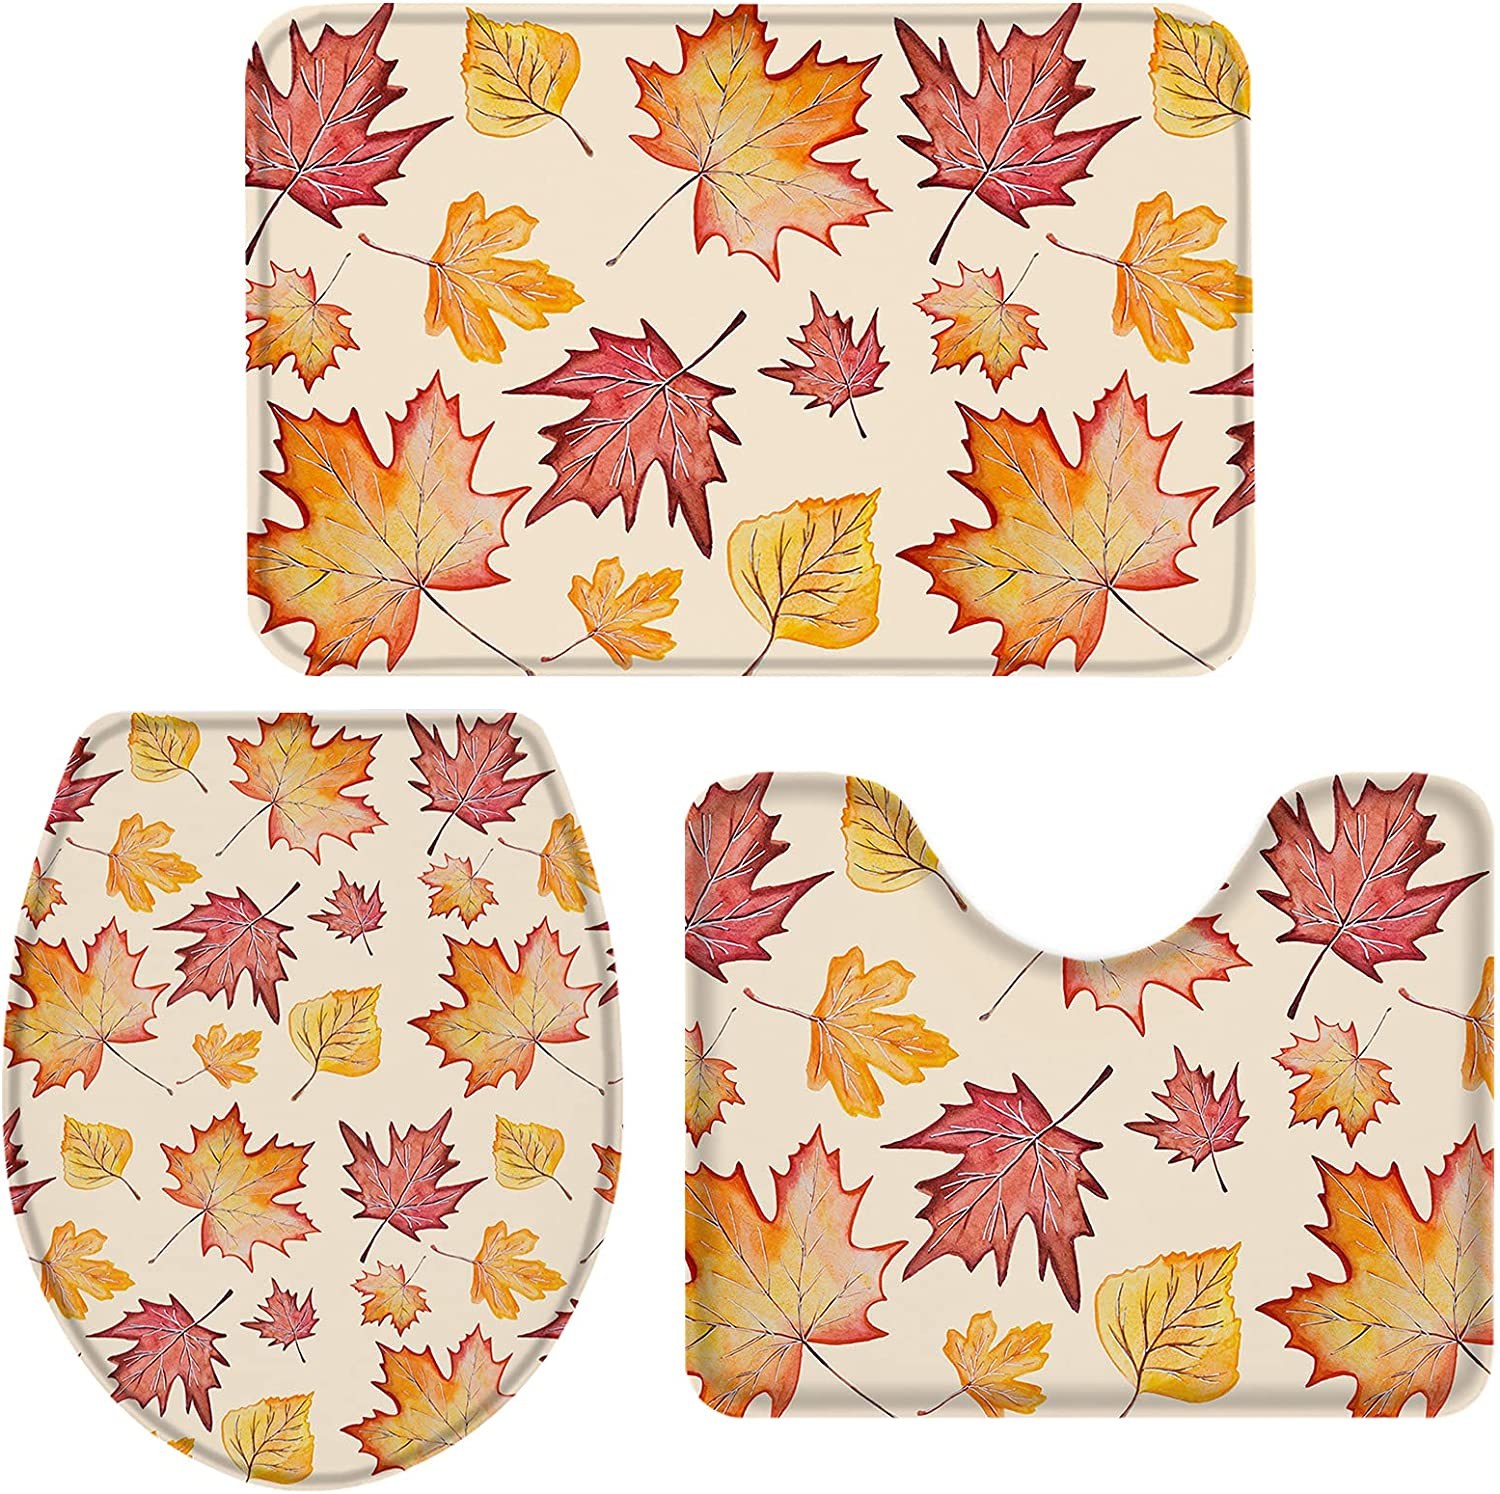 Popular overseas OneHoney Thanksgiving Watercolor Maple Leaf a Rugs Bath 3 Pieces 67% OFF of fixed price